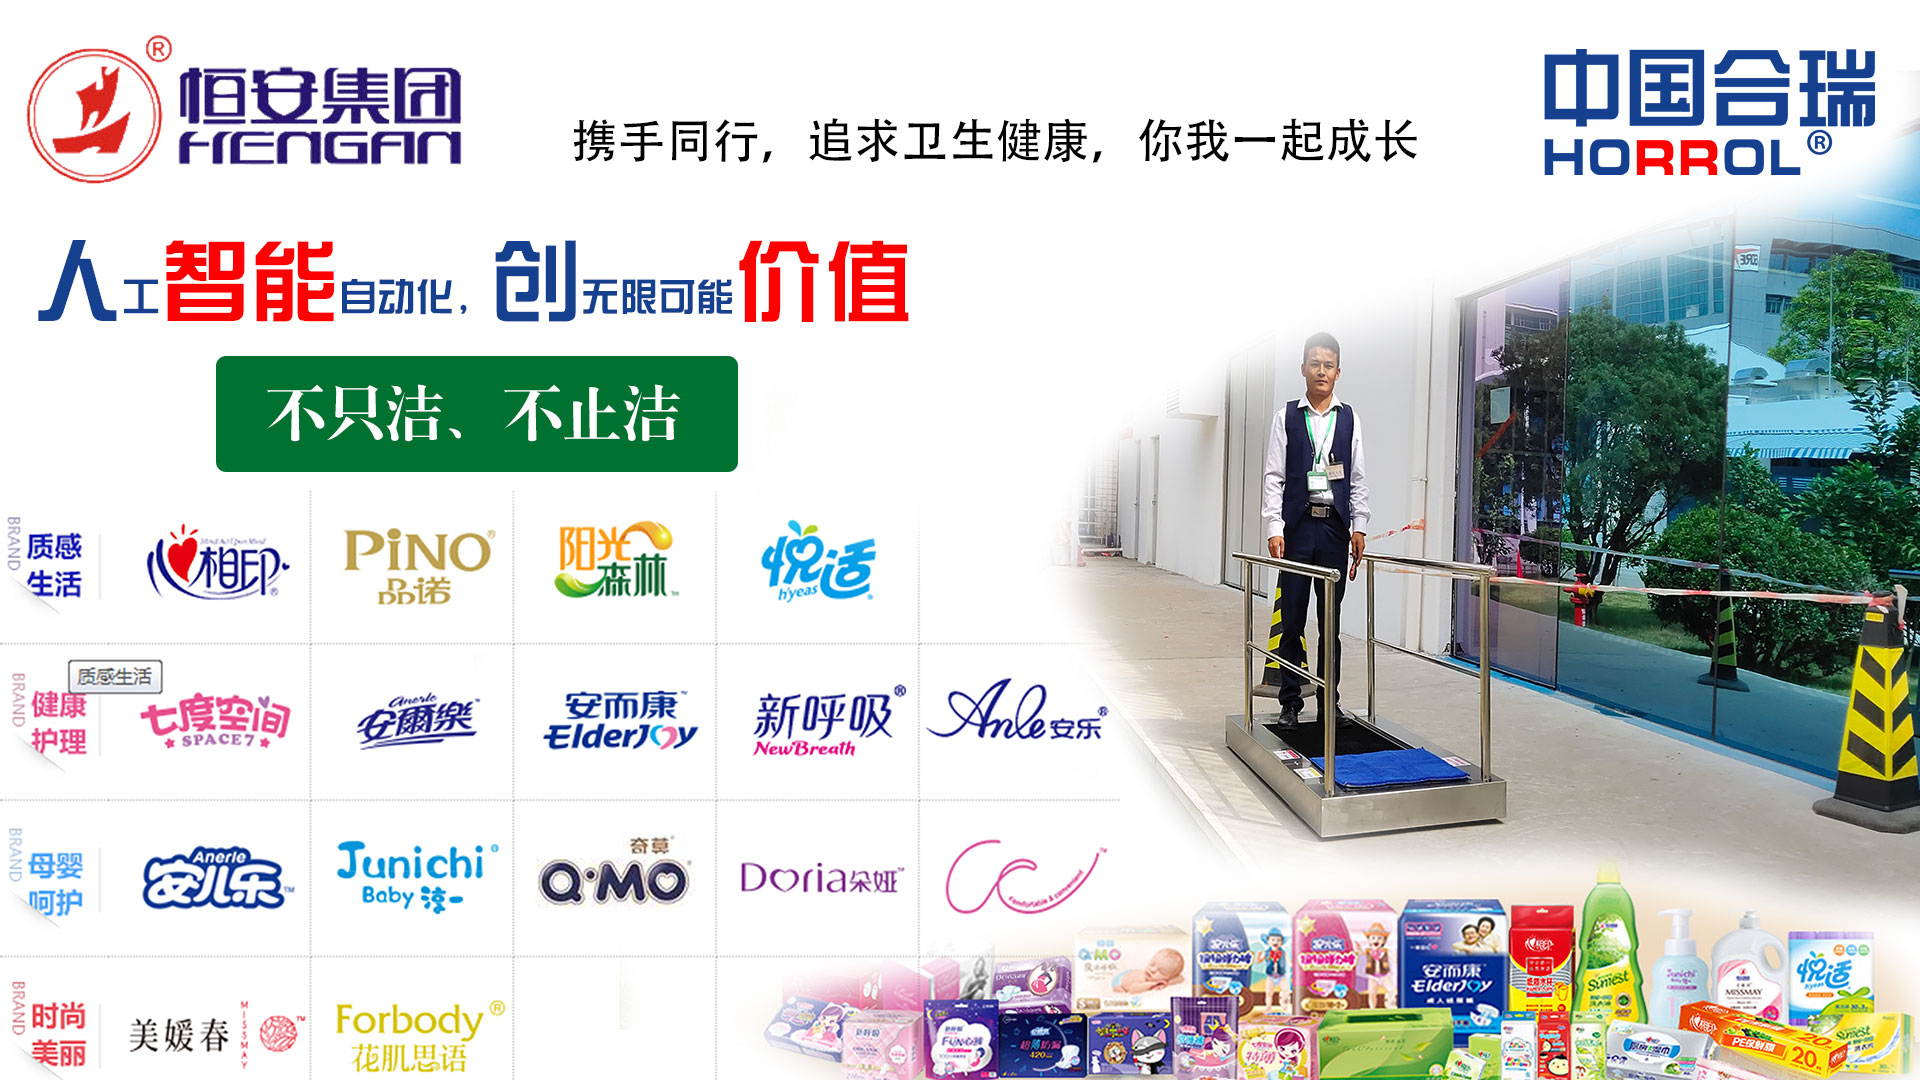 Together with Hengan Group, Horrol sole cleaner guarantees health